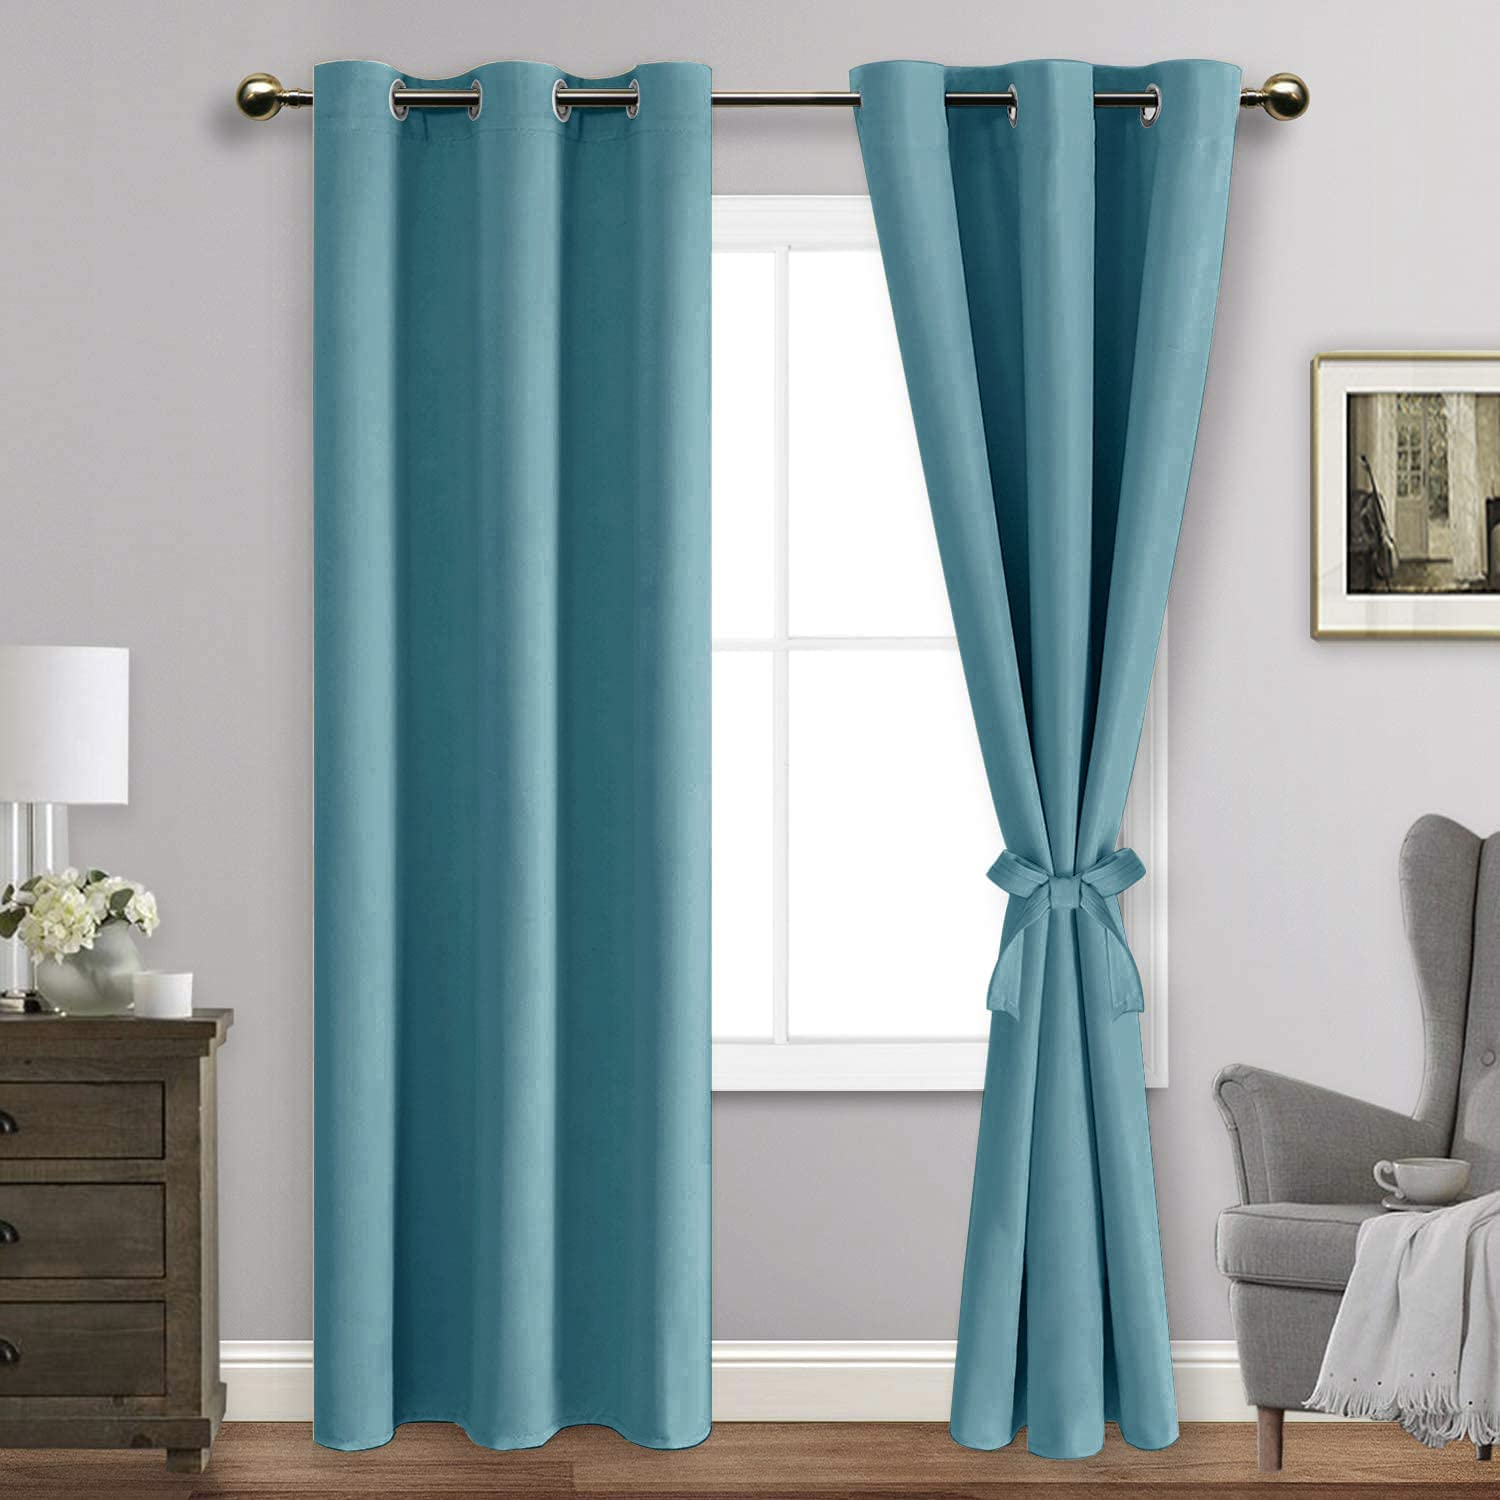 ROSETTE Blackout Curtains with Financial sales sale Dallas Mall Tiebacks Thermal Lig - Insulated